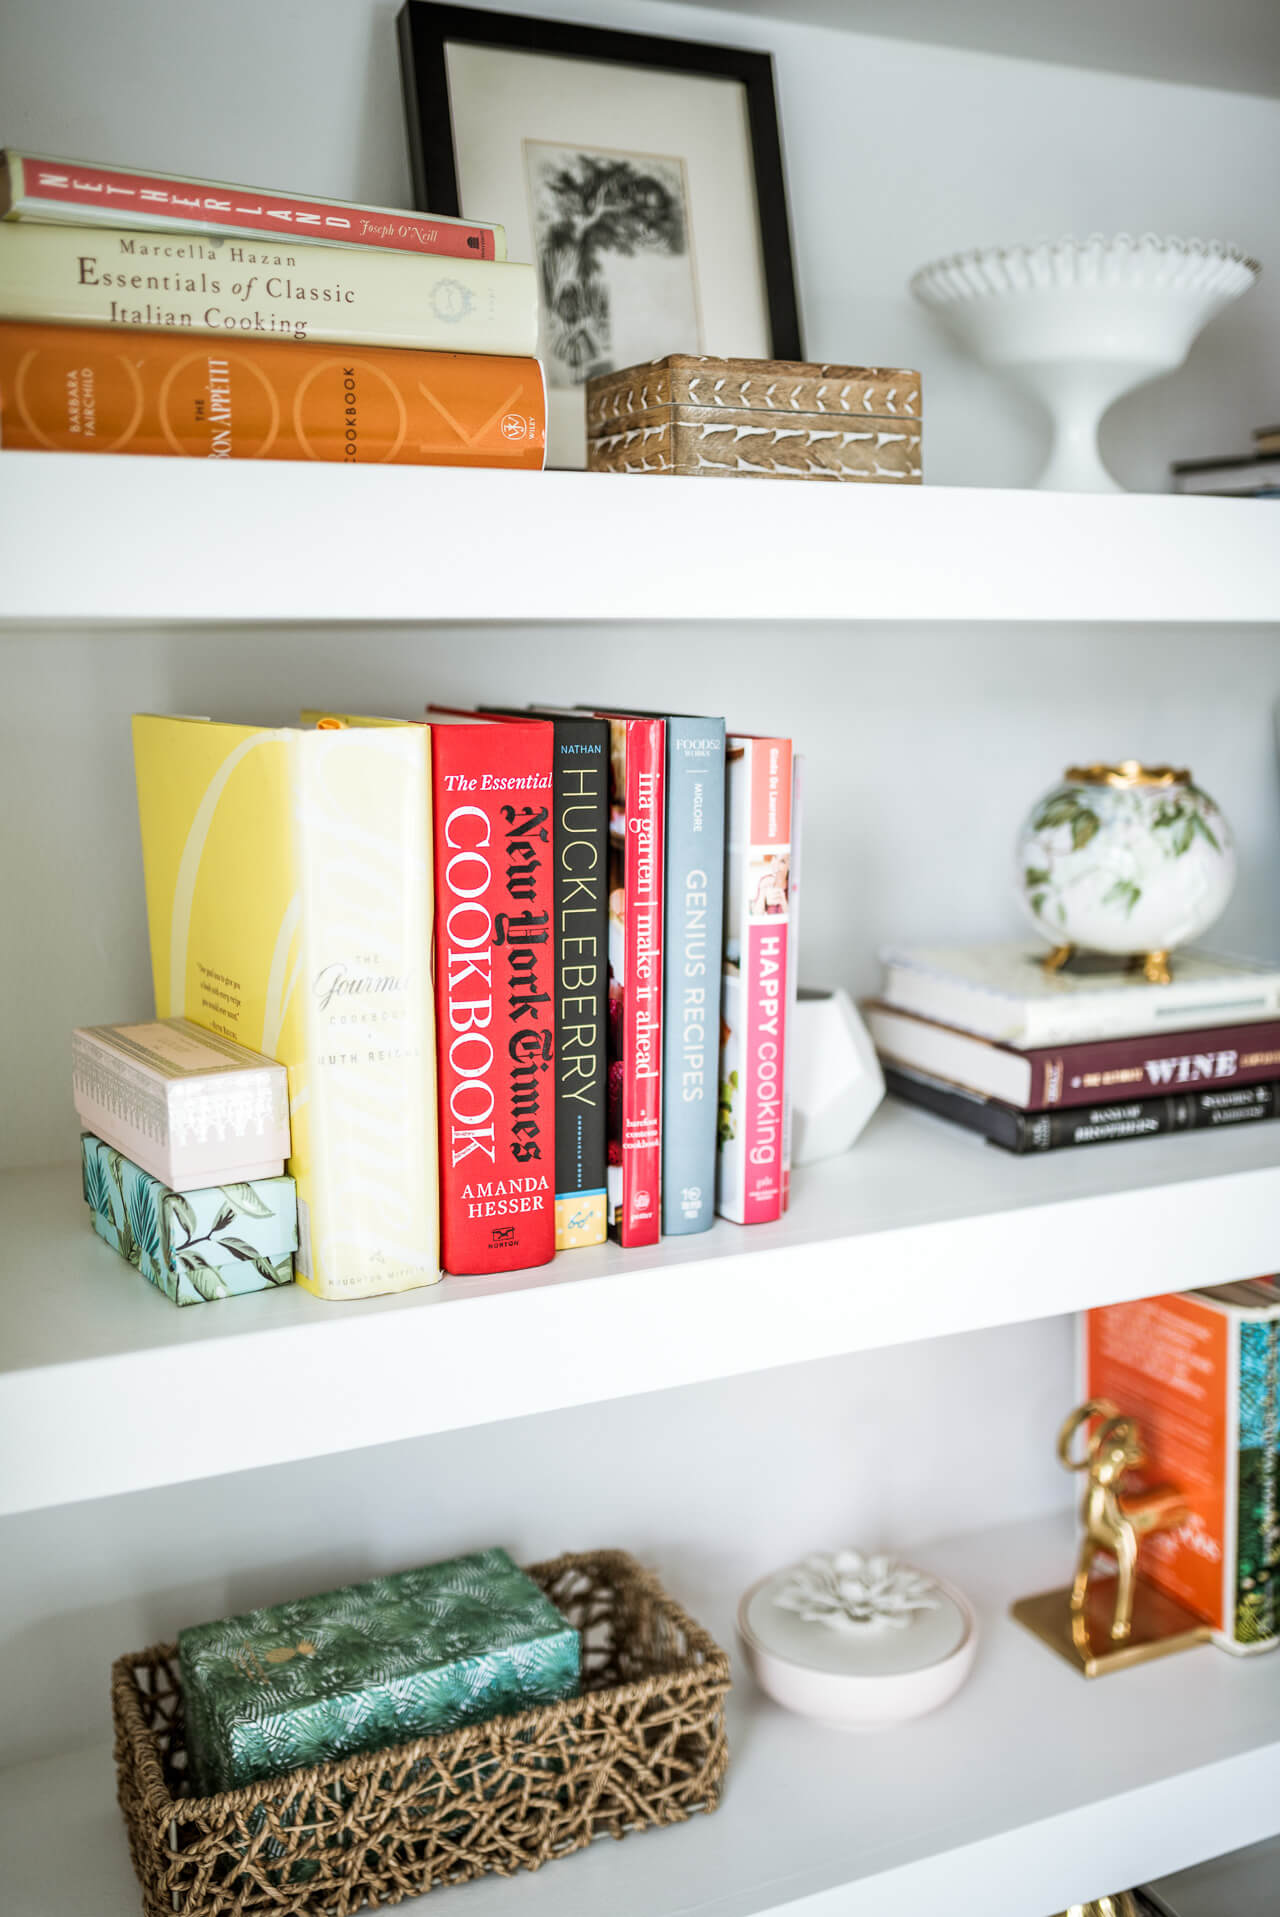 my top cookbooks I use at home